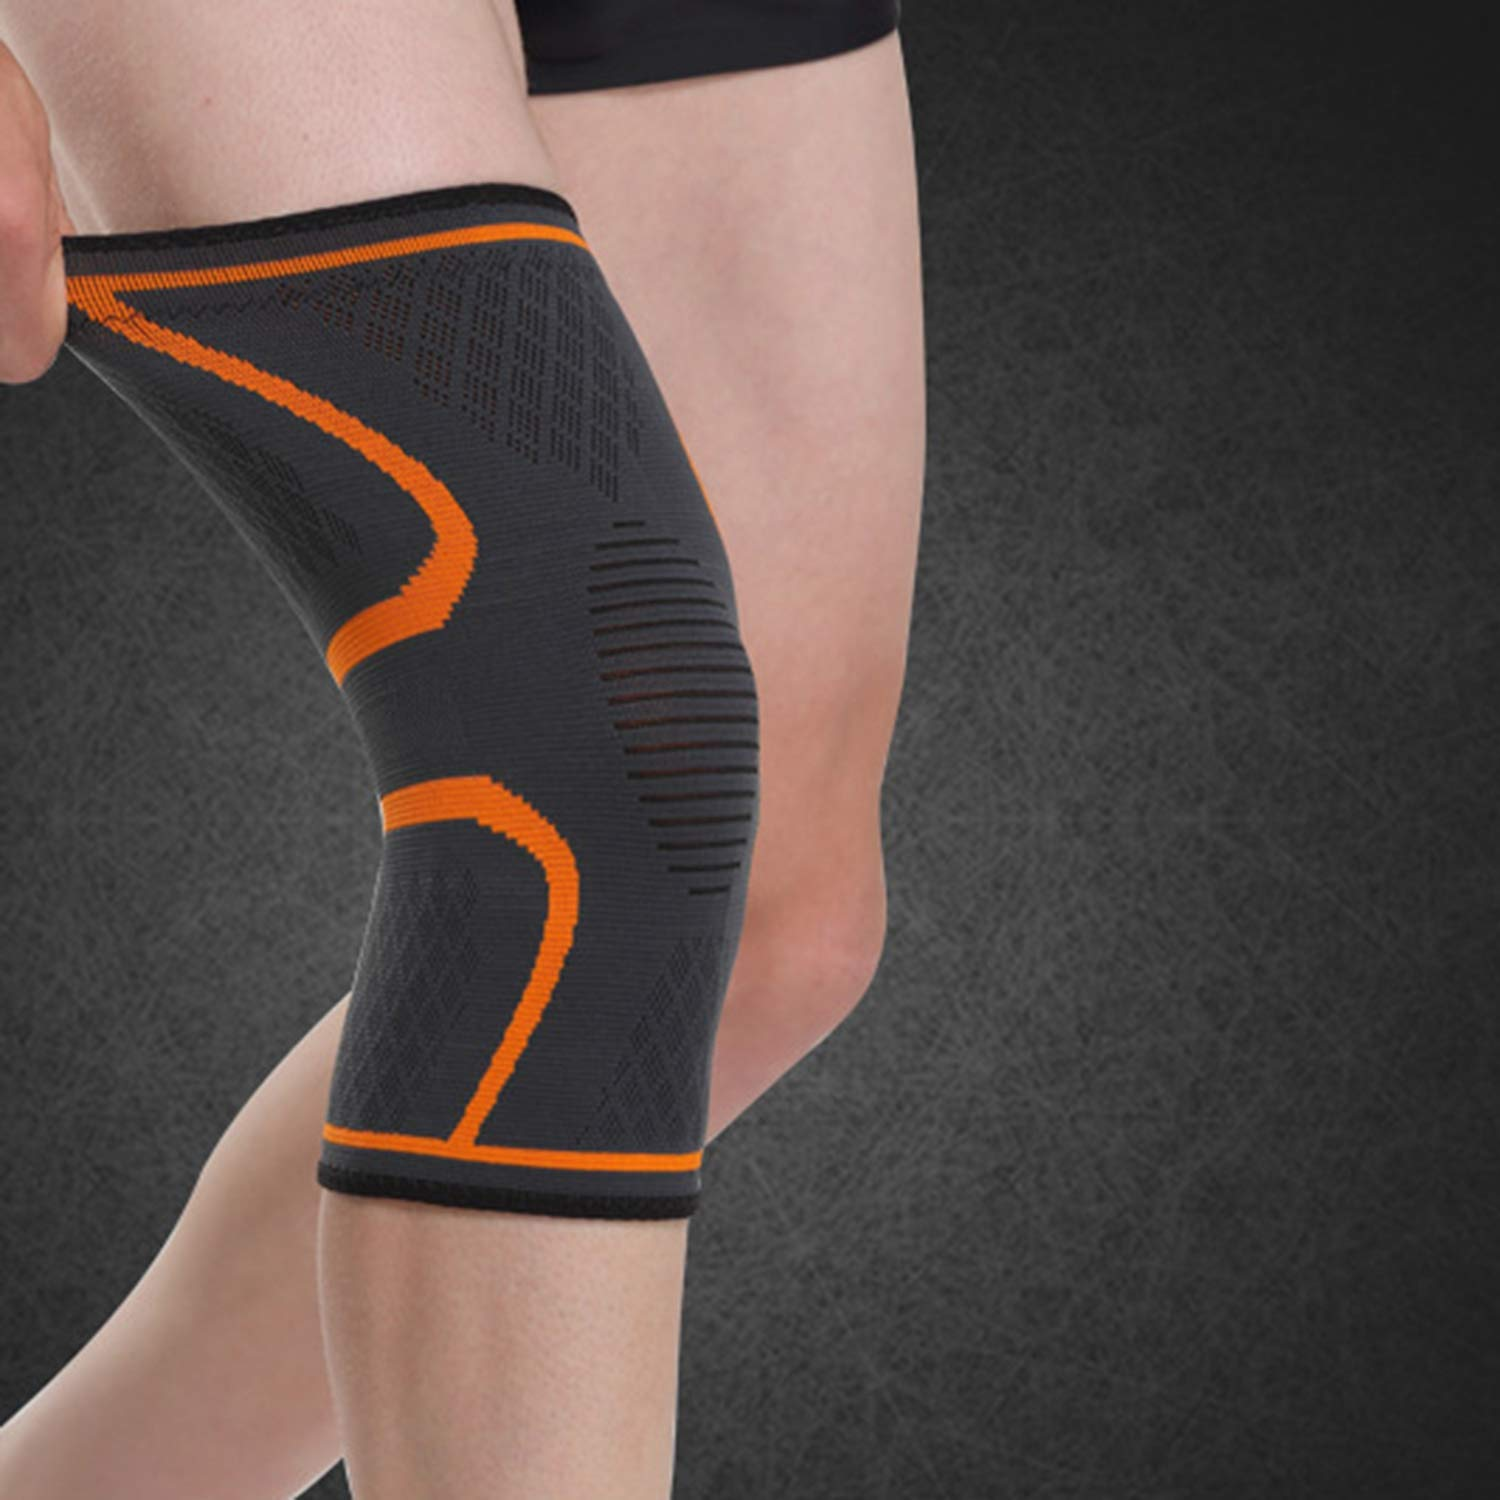 Elbow Pads//Knee Pads,1PCS Fitness Running Cycling Knee Support Braces Elastic Nylon Sport Compression Knee Pad Sleeve for Basketball Volleyball